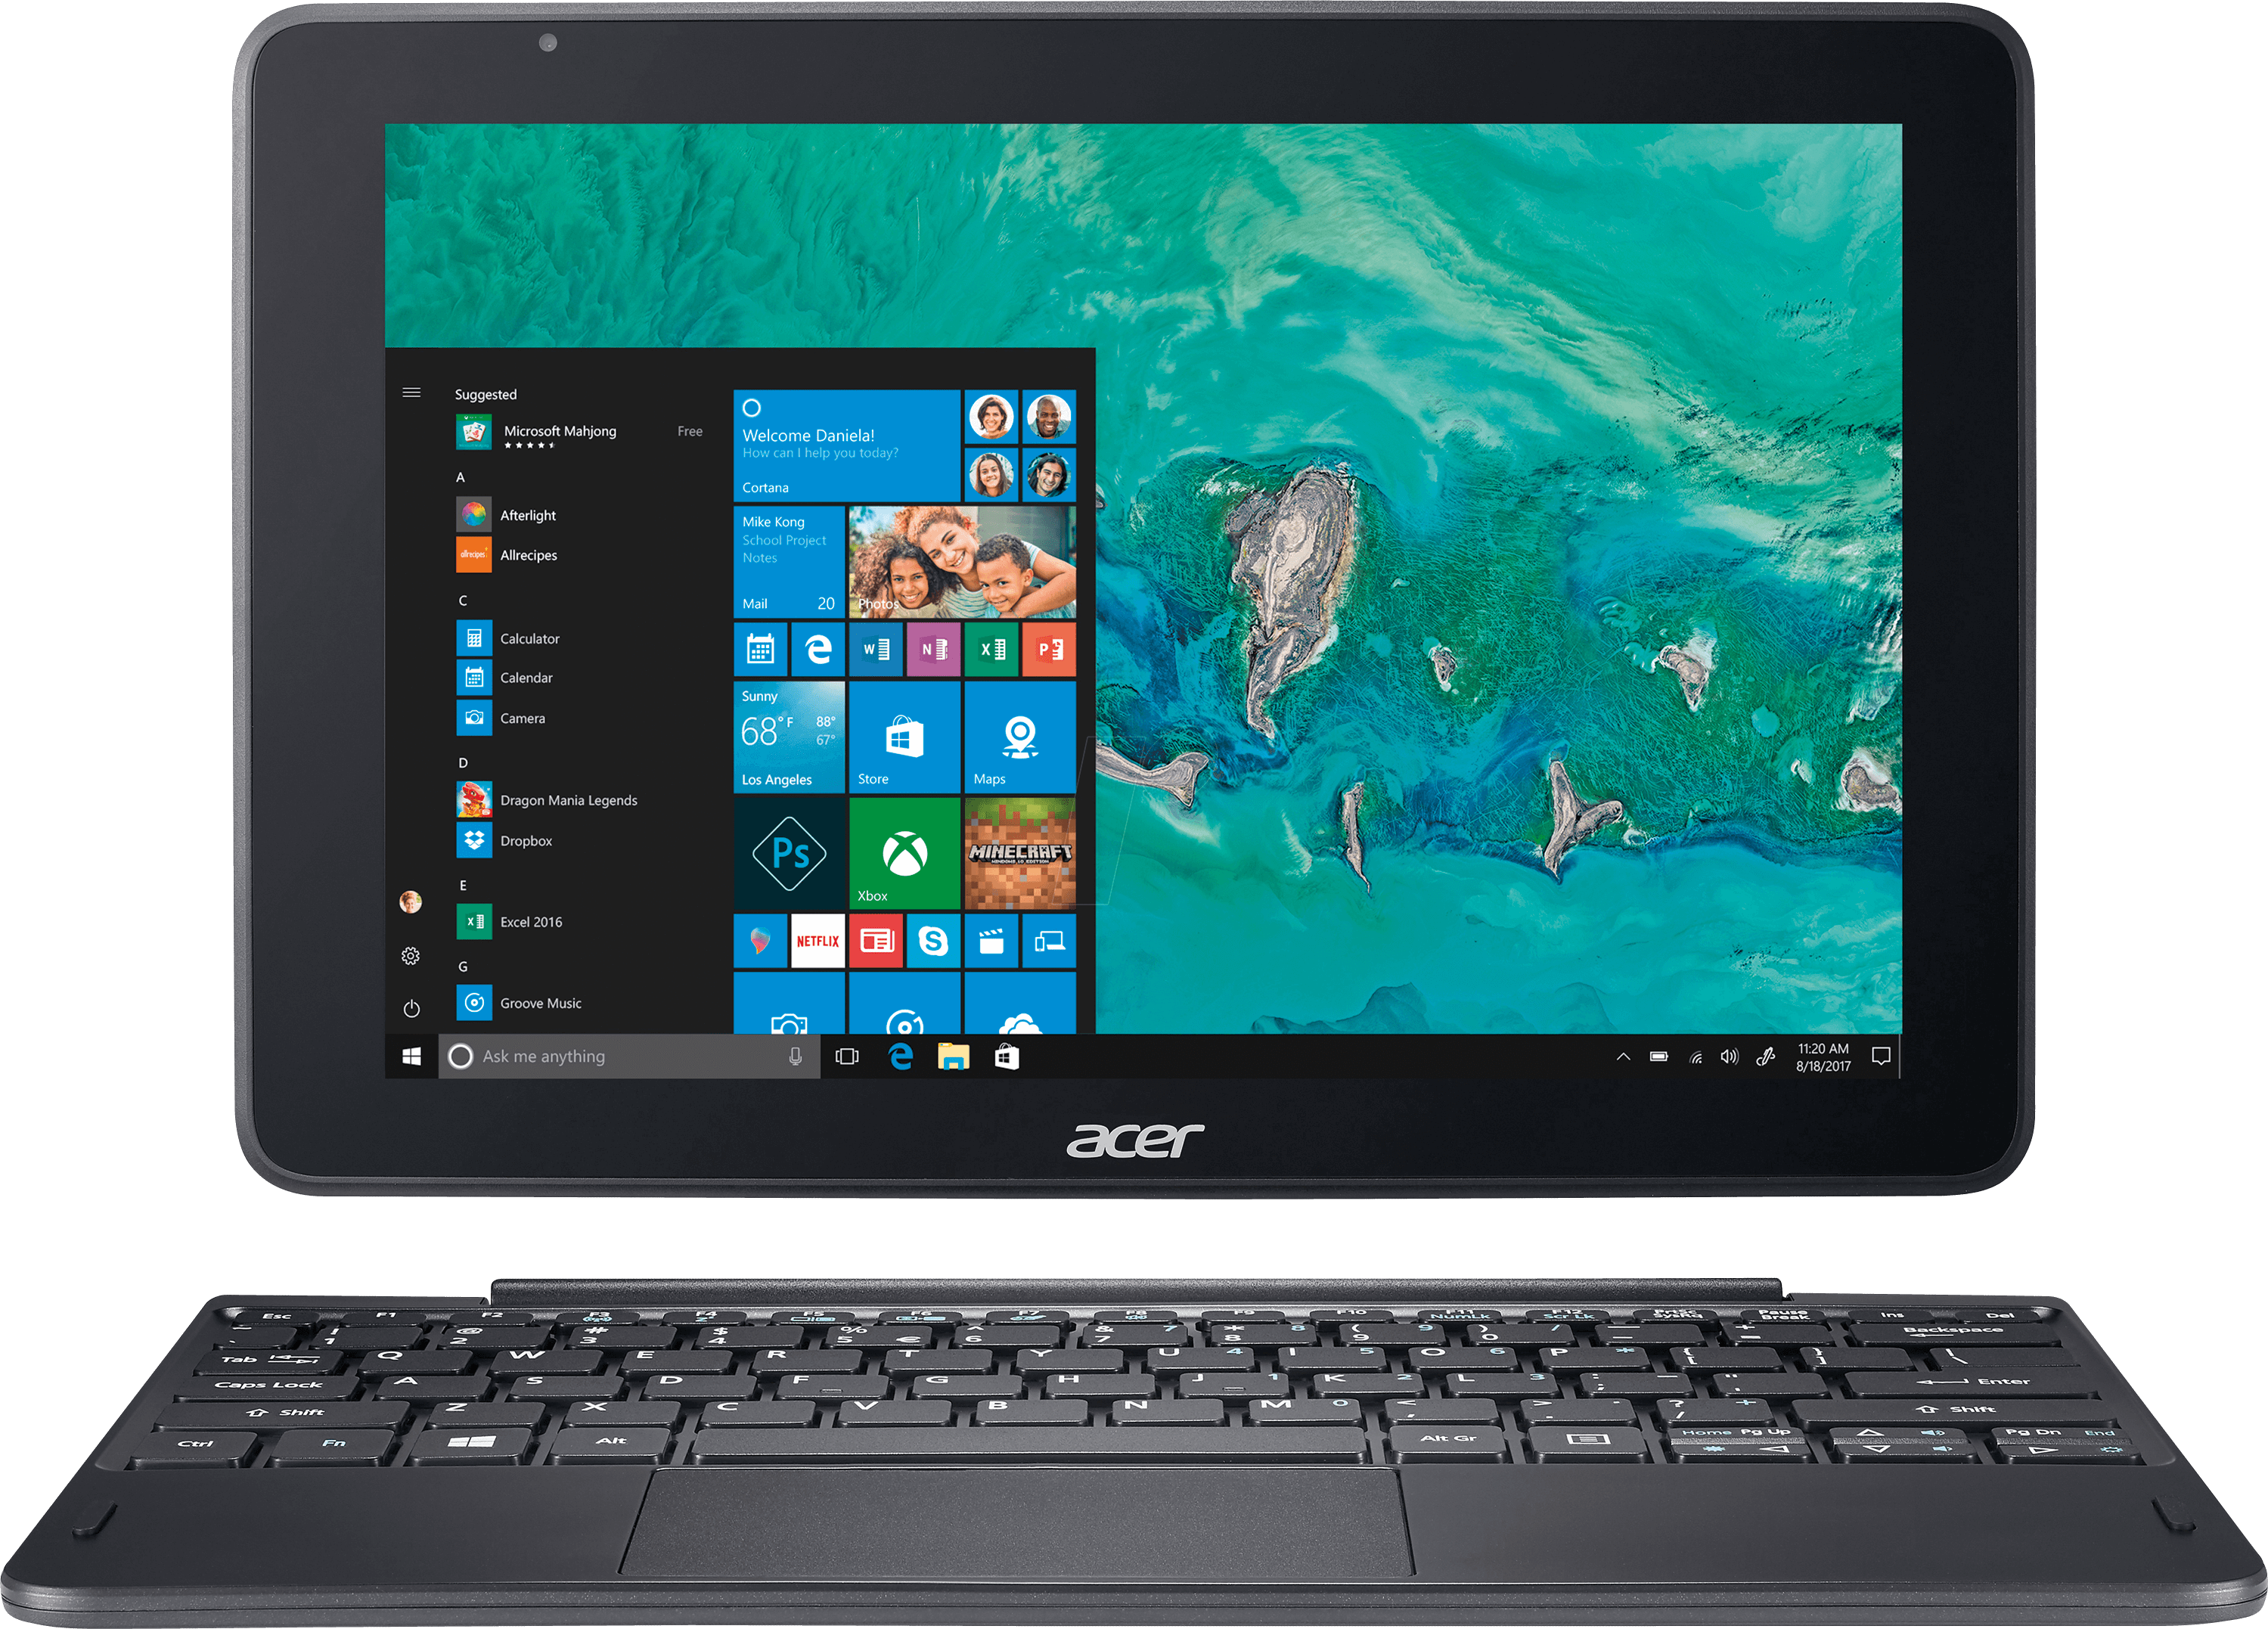 ACER S1003-13ZD - Tablet, Acer One, Windows 10 Home